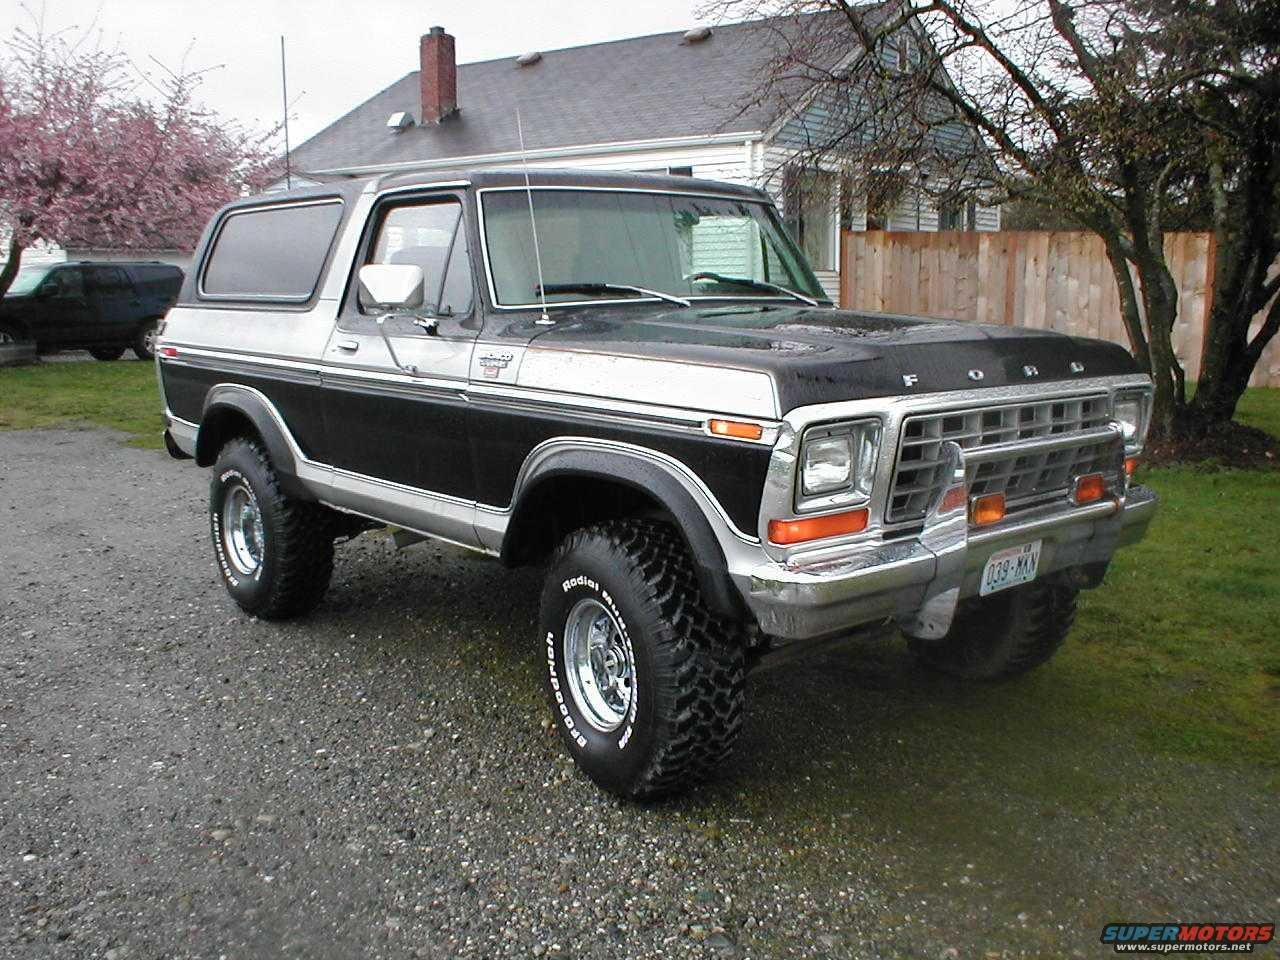 Truck Mud Tires >> 1979 Ford Bronco black/silver XLT R picture | SuperMotors.net